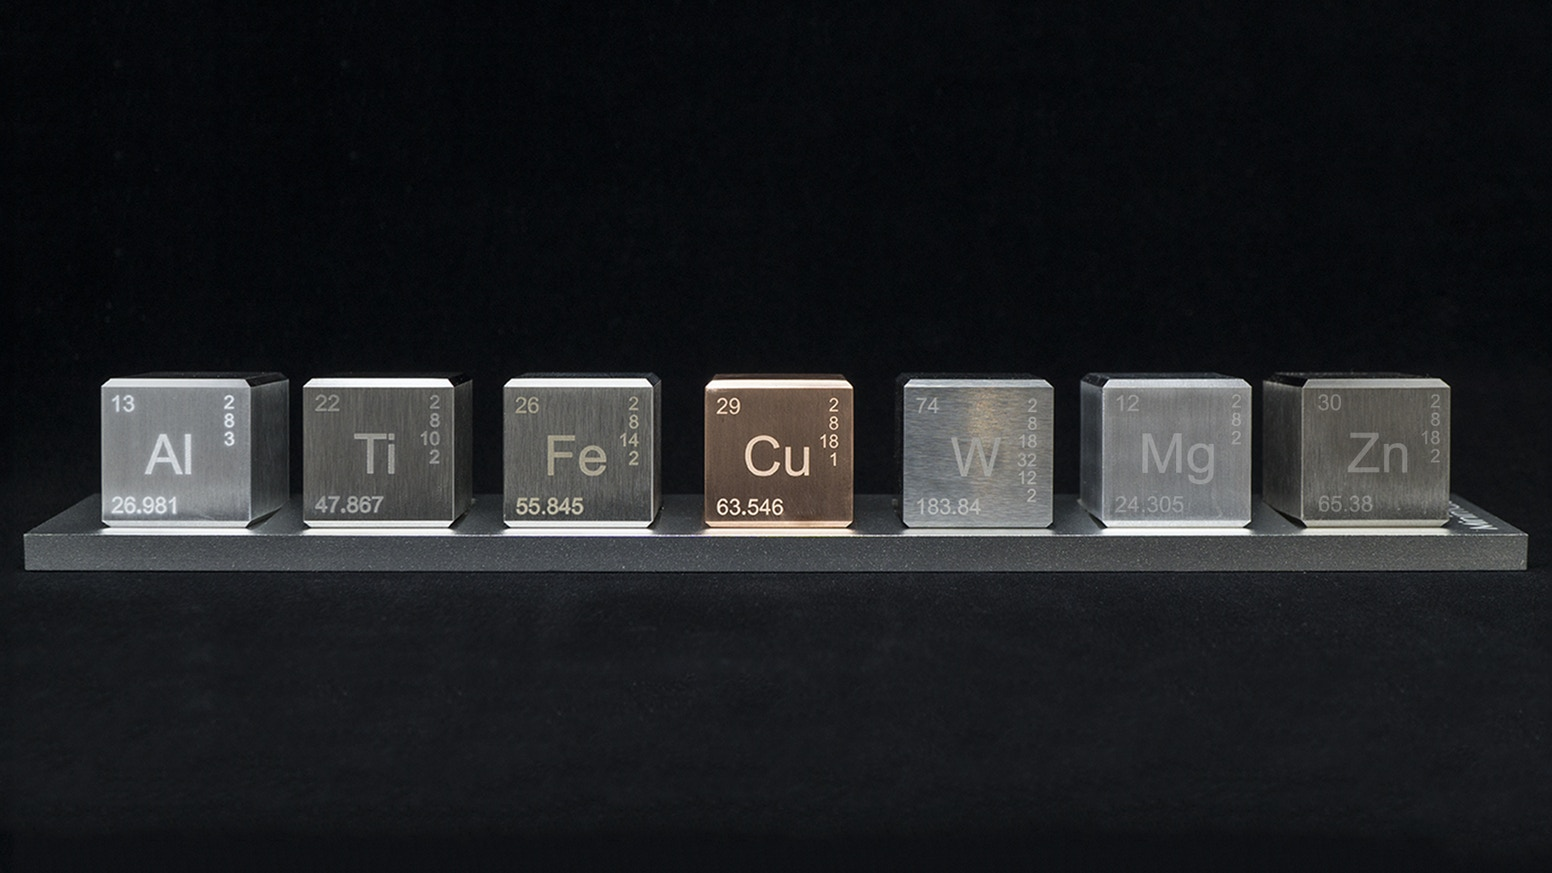 A beautiful desk ornament made of 4 to 7 unique elements from the periodic table.